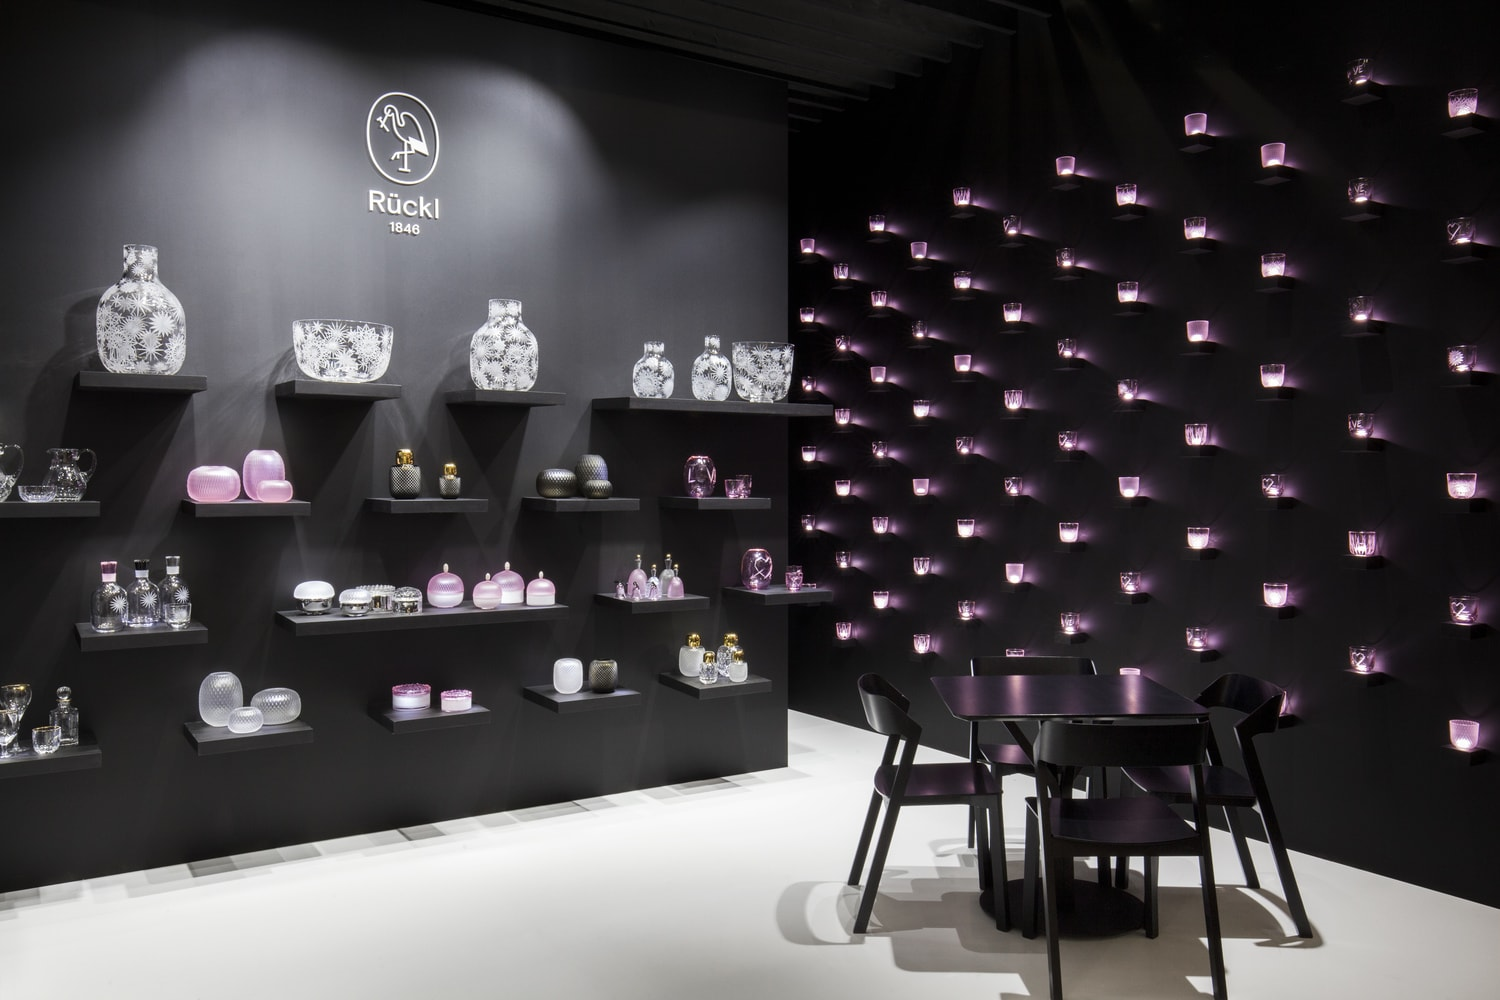 The exhibition stand forRückl Crystal at the Ambiente Fair Frankfurt 2018.Rücklis a Bohemian glass factory founded in 1846 in Nižbor, specialised in glassware. Designed by Jiri Krejcirik.